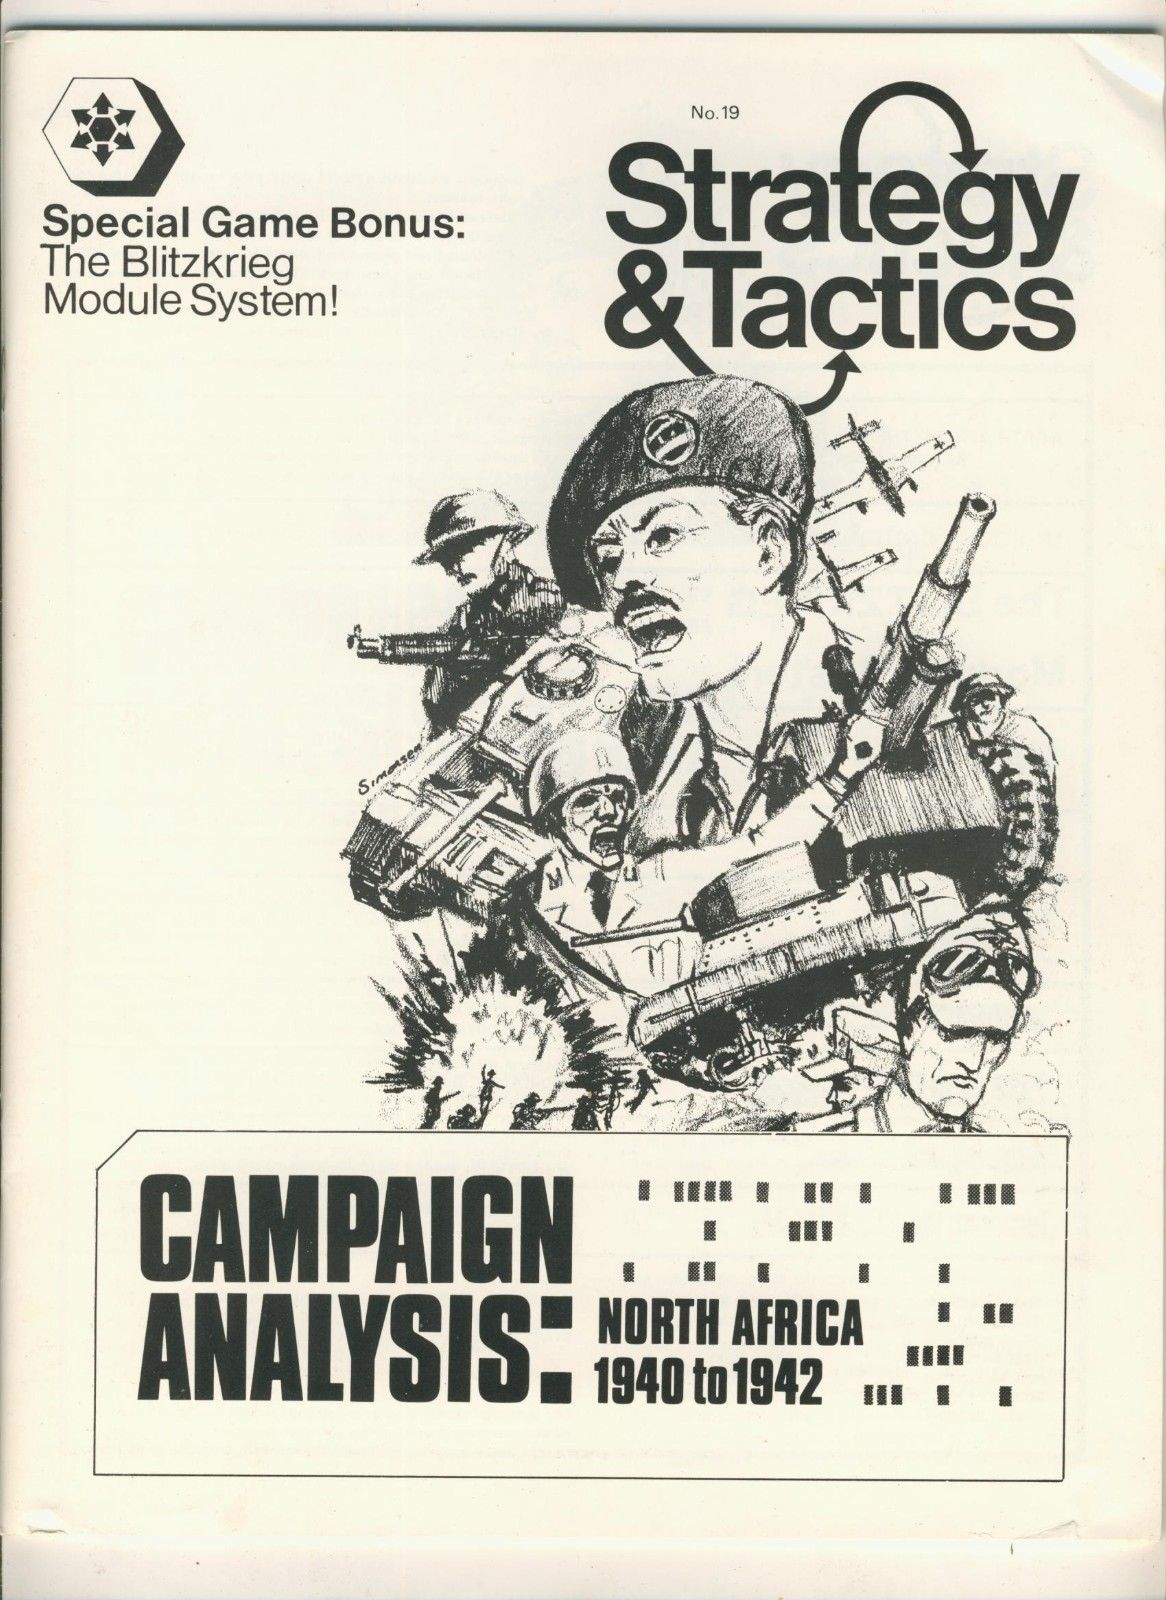 Strategy & Tactics - Game - 19 - Blitzkrieg Module System - Campaign Analysis: North Africa